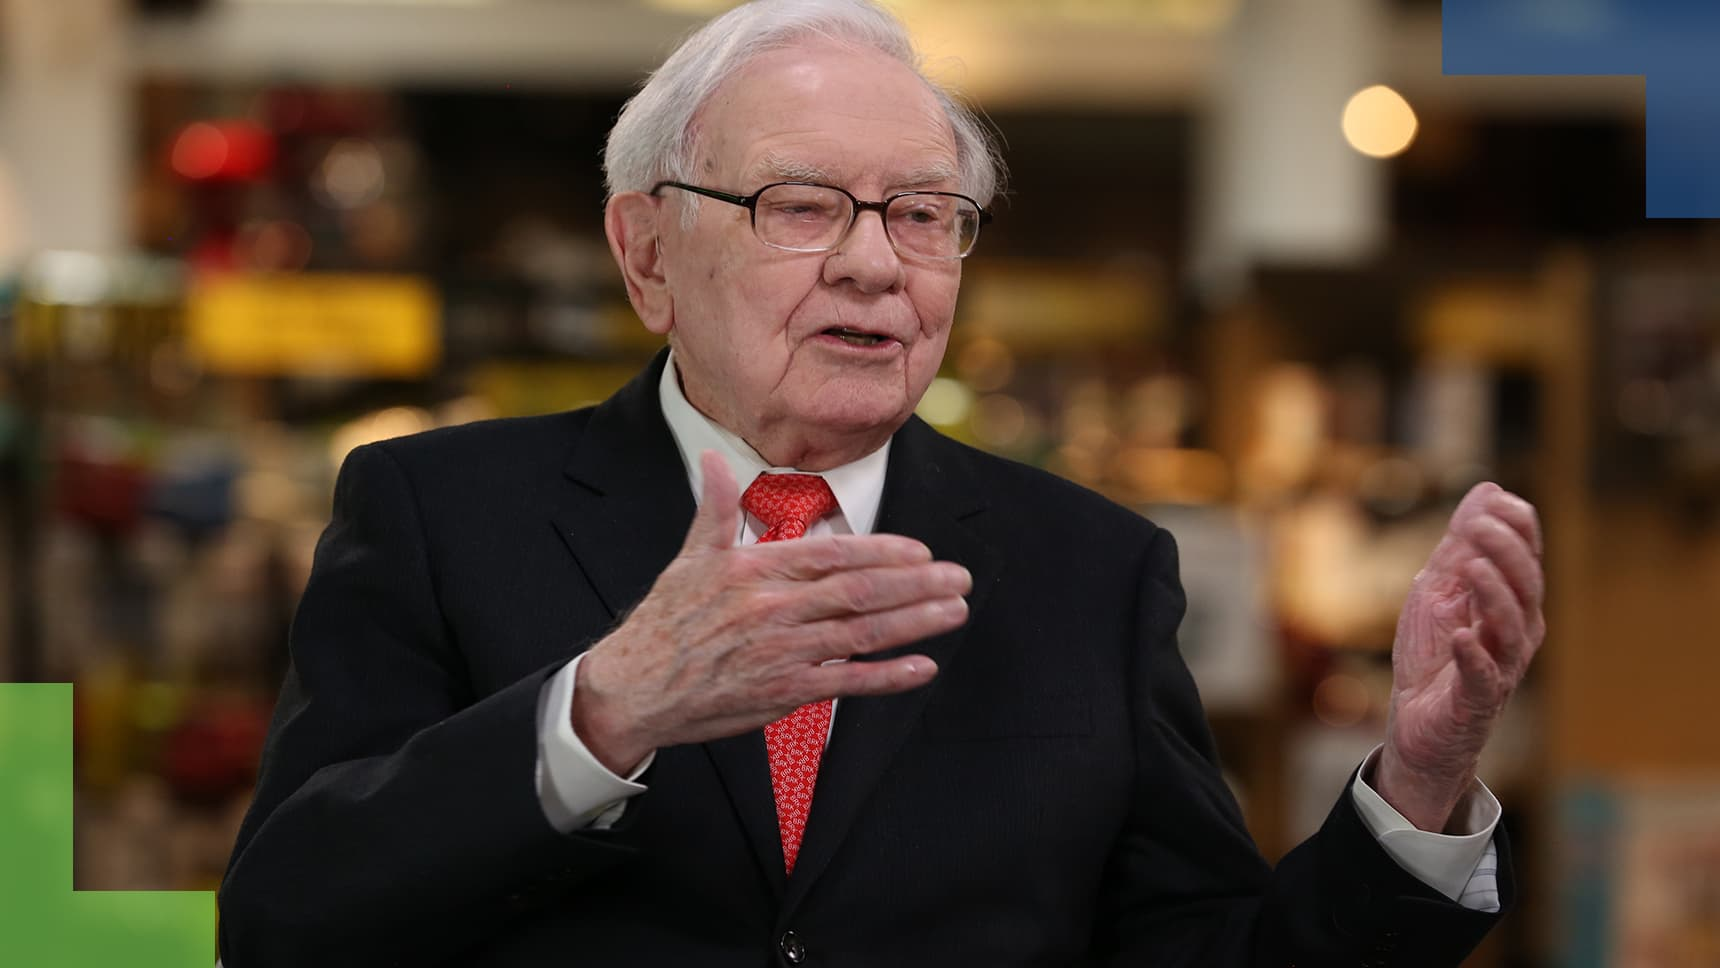 Warren Buffett says US health care must be revamped or the government could make it worse